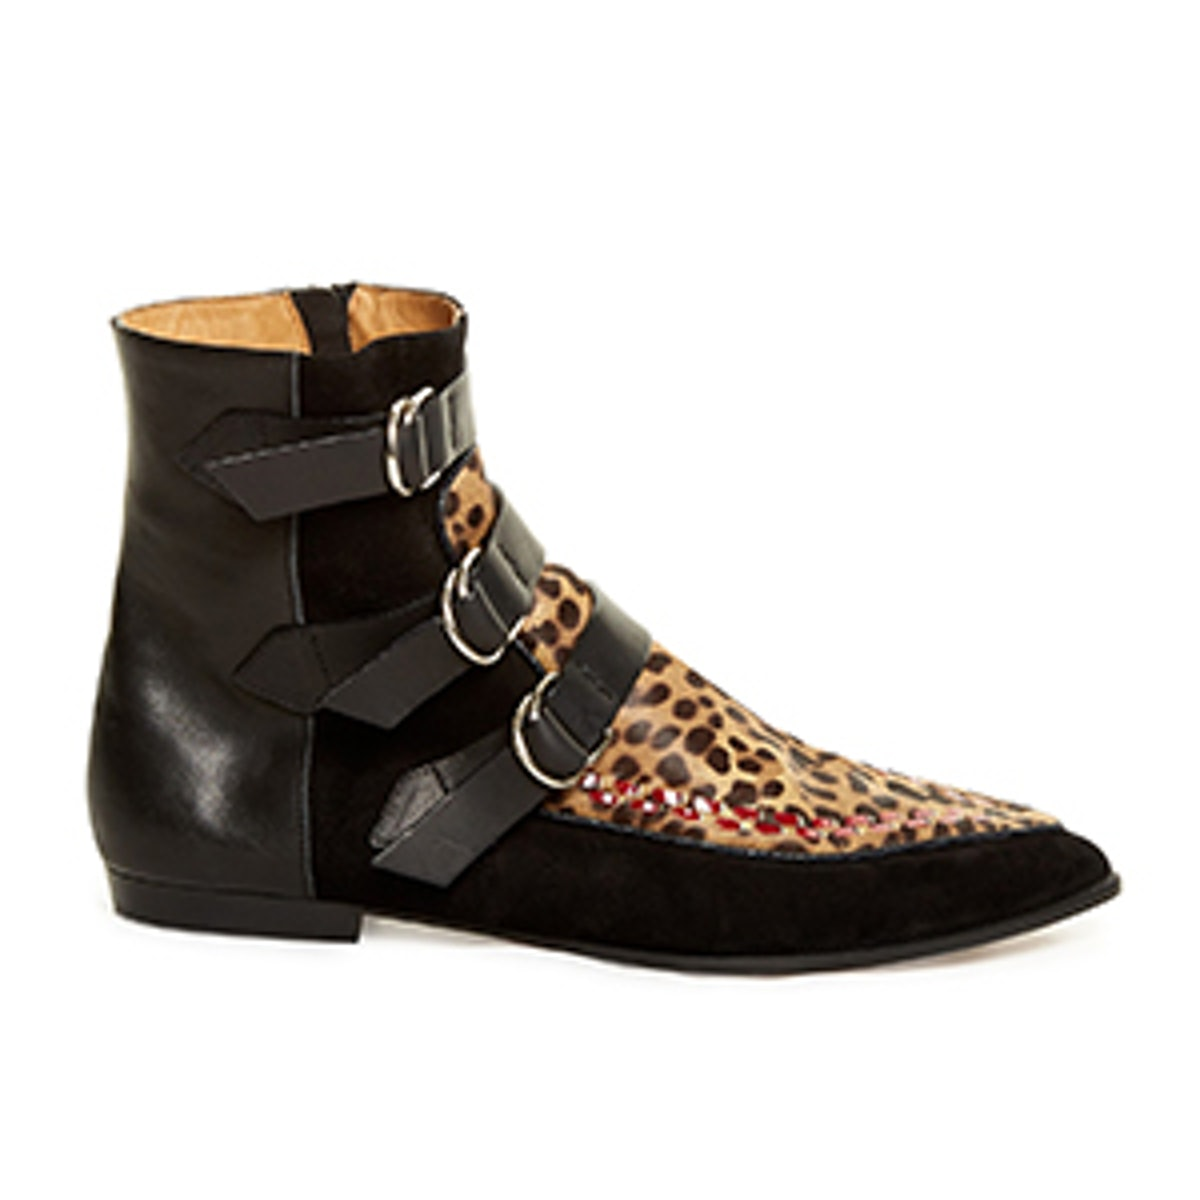 Rowi Calf-Hair Leather and Suede Ankle Boots